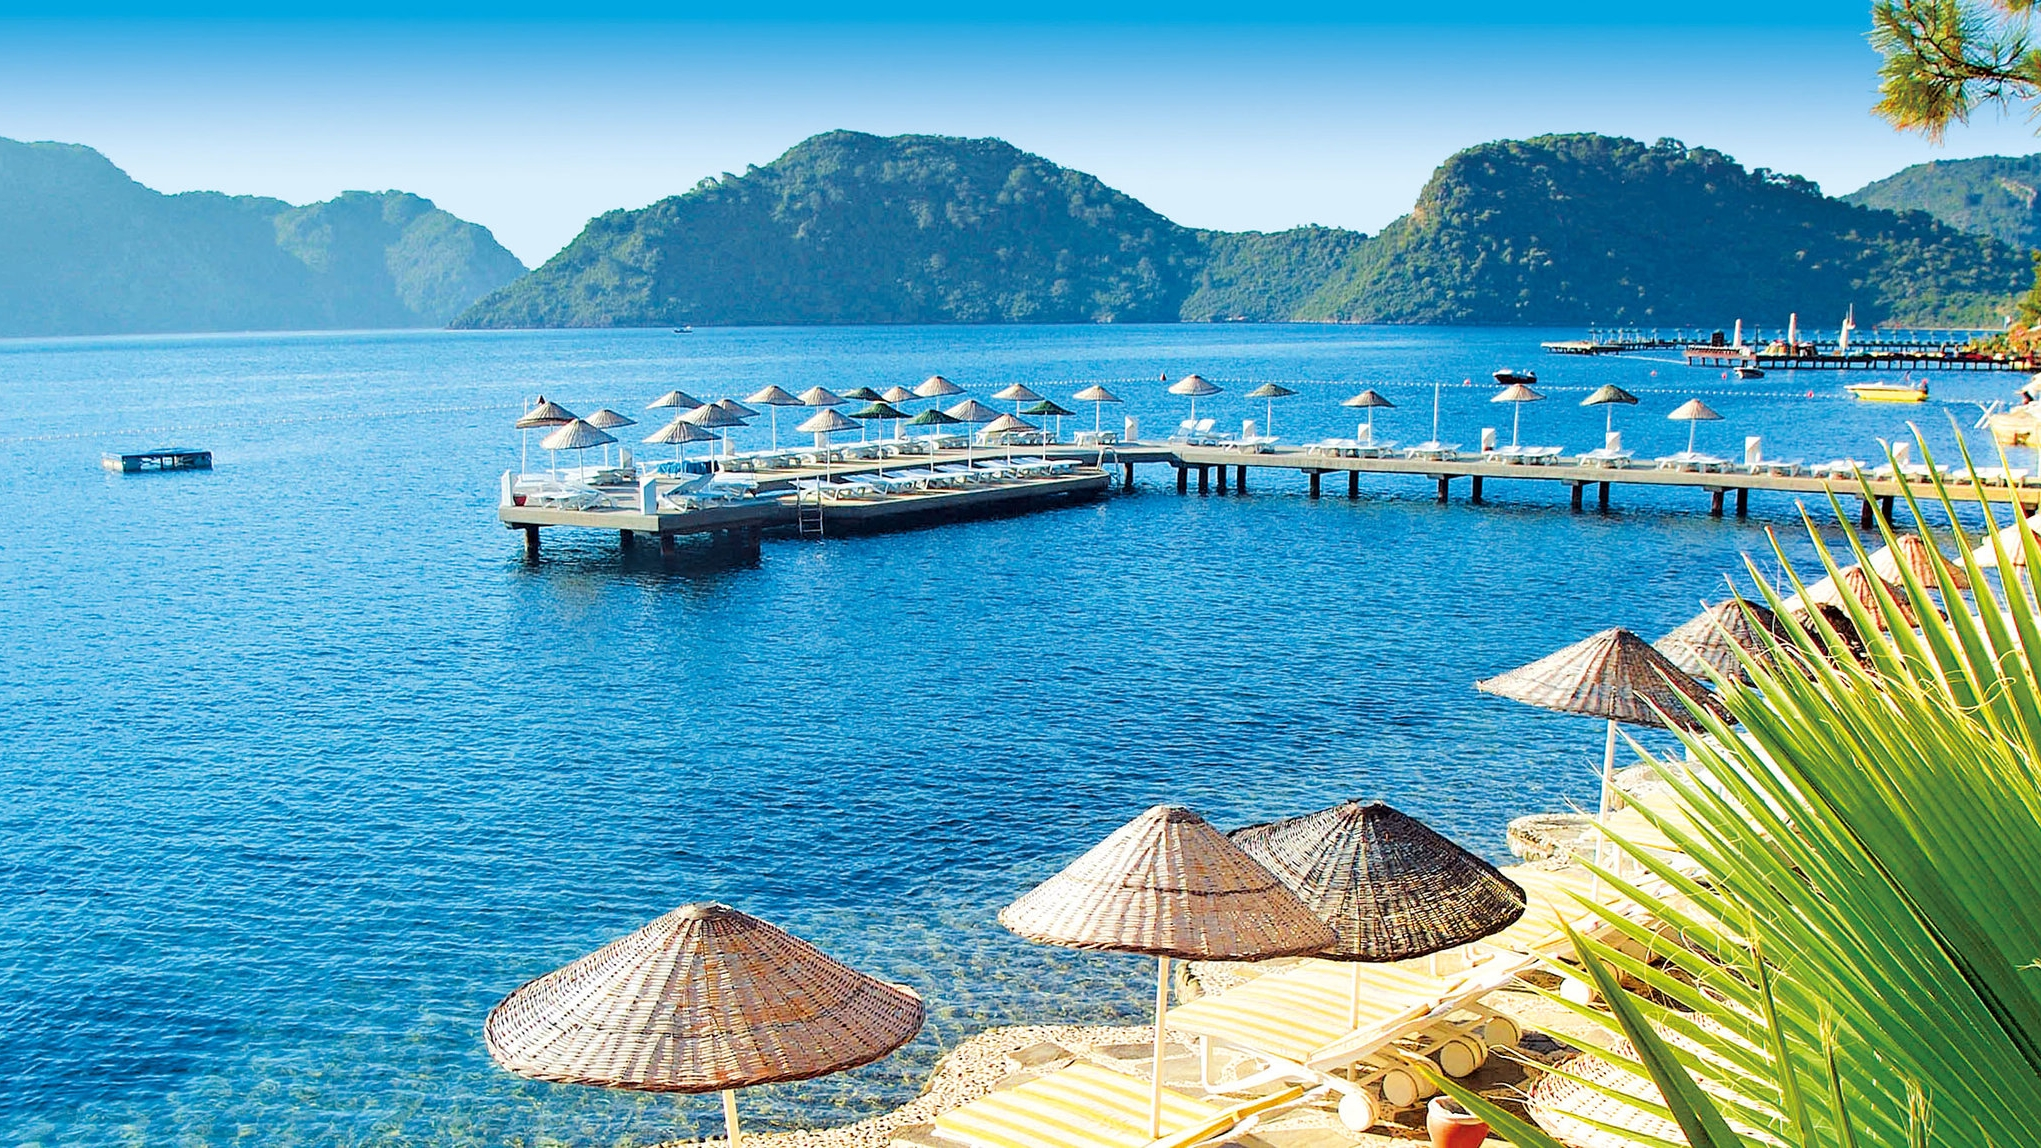 Labranda mares Hotel TURKEY - 21st September 2019 7 to 28nts ALL INCLUSIVE BRIDGE+BOULES